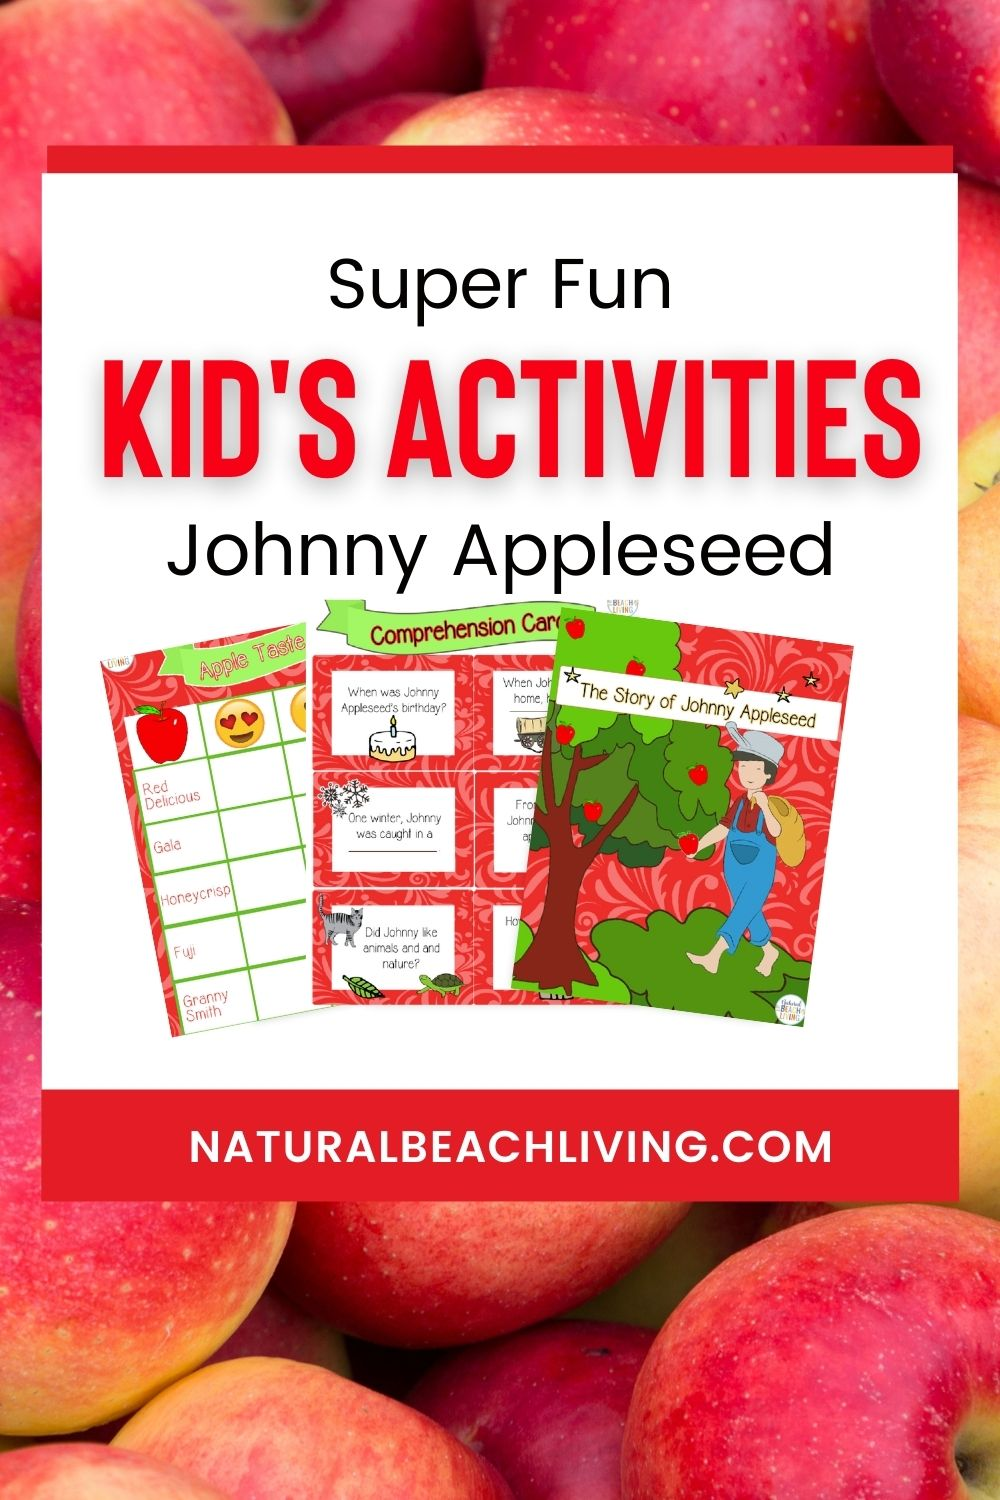 Discover the BEST ways to Celebrate Johnny Appleseed Day with your kids at home and in the classroom, over 40 Johnny Appleseed Day activities, and Johnny Appleseed Day Crafts for preschool, kindergarten, and elementary children